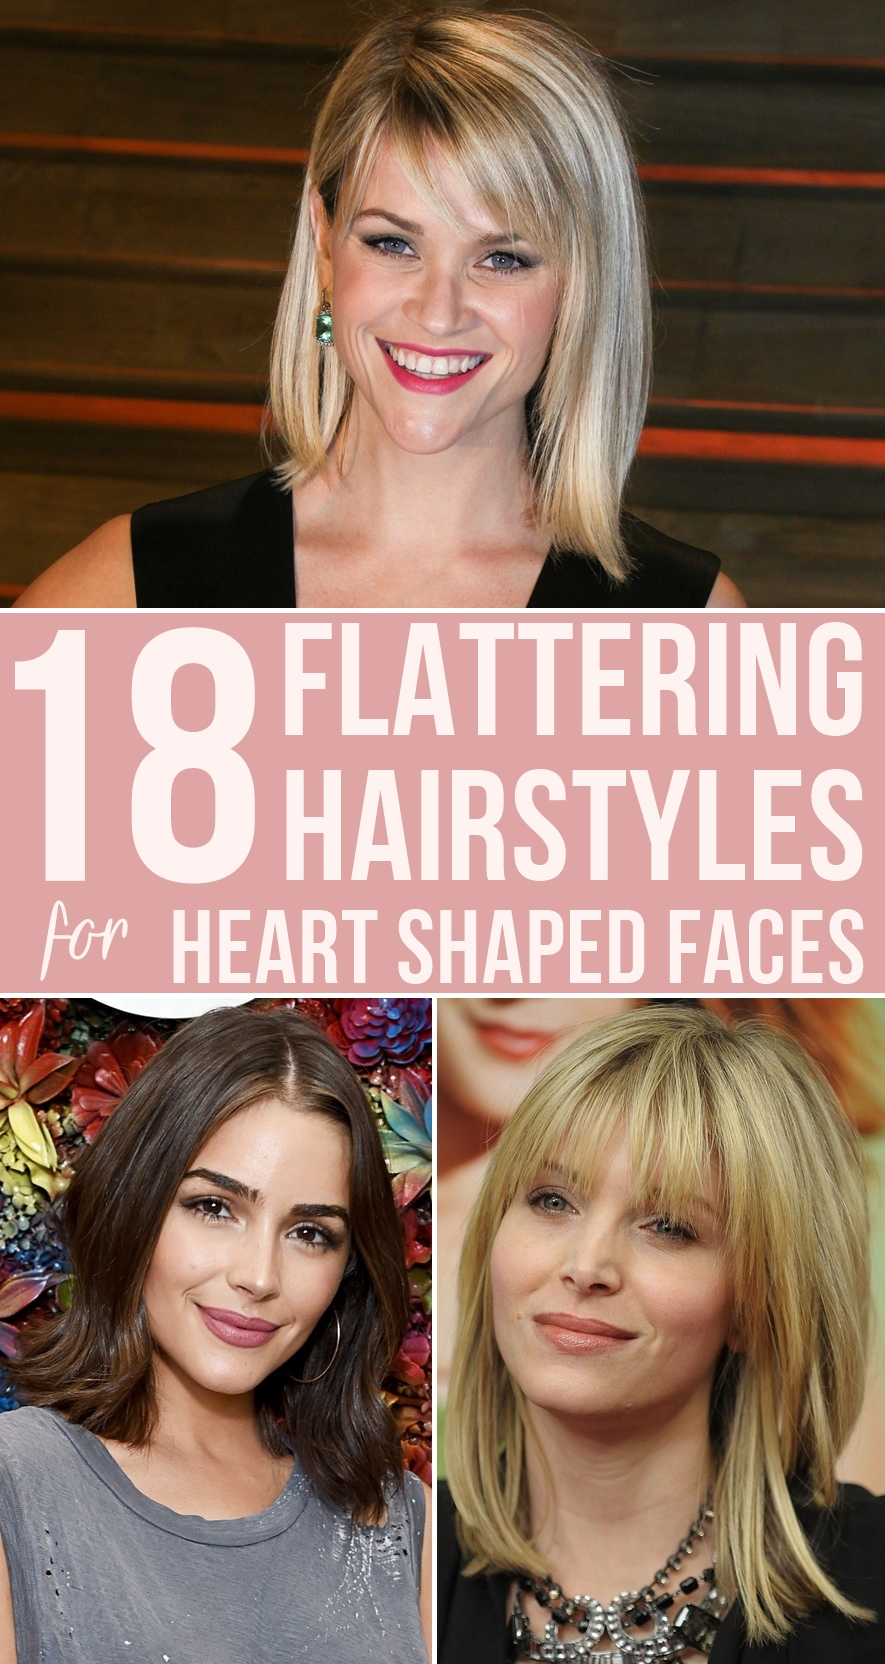 18 Flattering Hairstyles For Heart Shaped Faces